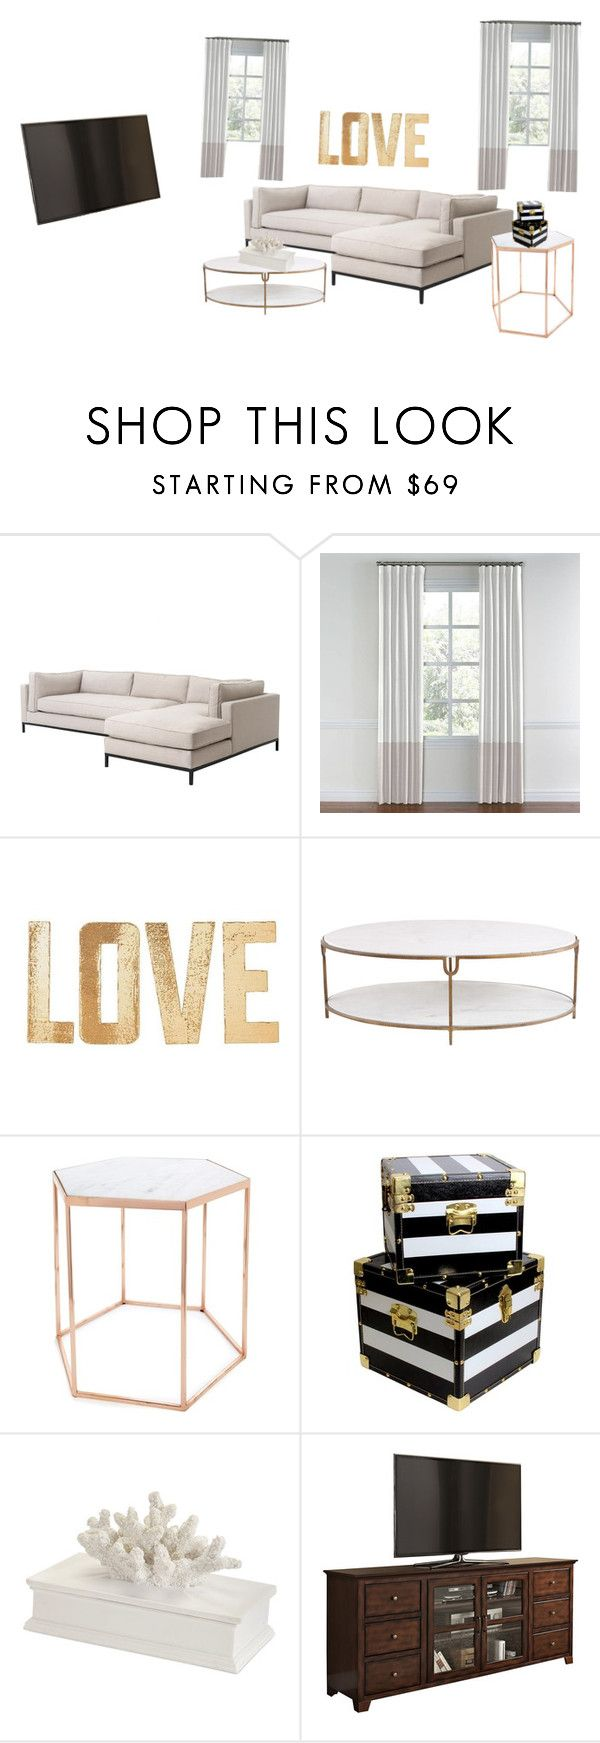 """""""Bride's living room"""" by kalystacheer on Polyvore featuring interior, interiors, interior design, home, home decor, interior decorating, PBteen, Global Views, Bloomingville and living room"""